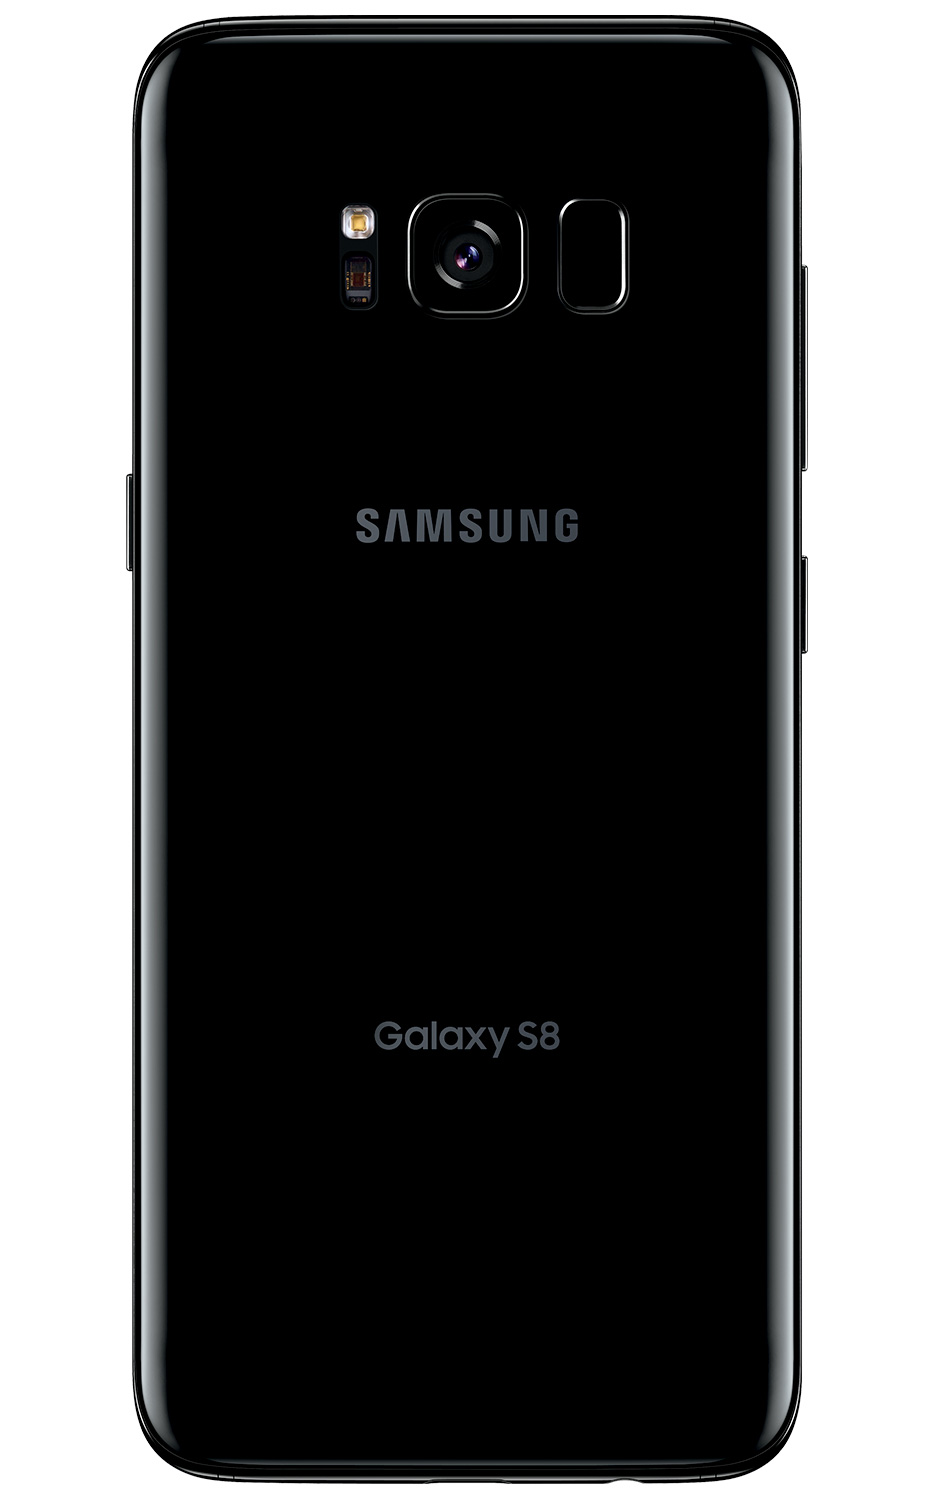 samsung galaxy s8 sm g950u 64gb midnight black t mobile smartphone ebay. Black Bedroom Furniture Sets. Home Design Ideas